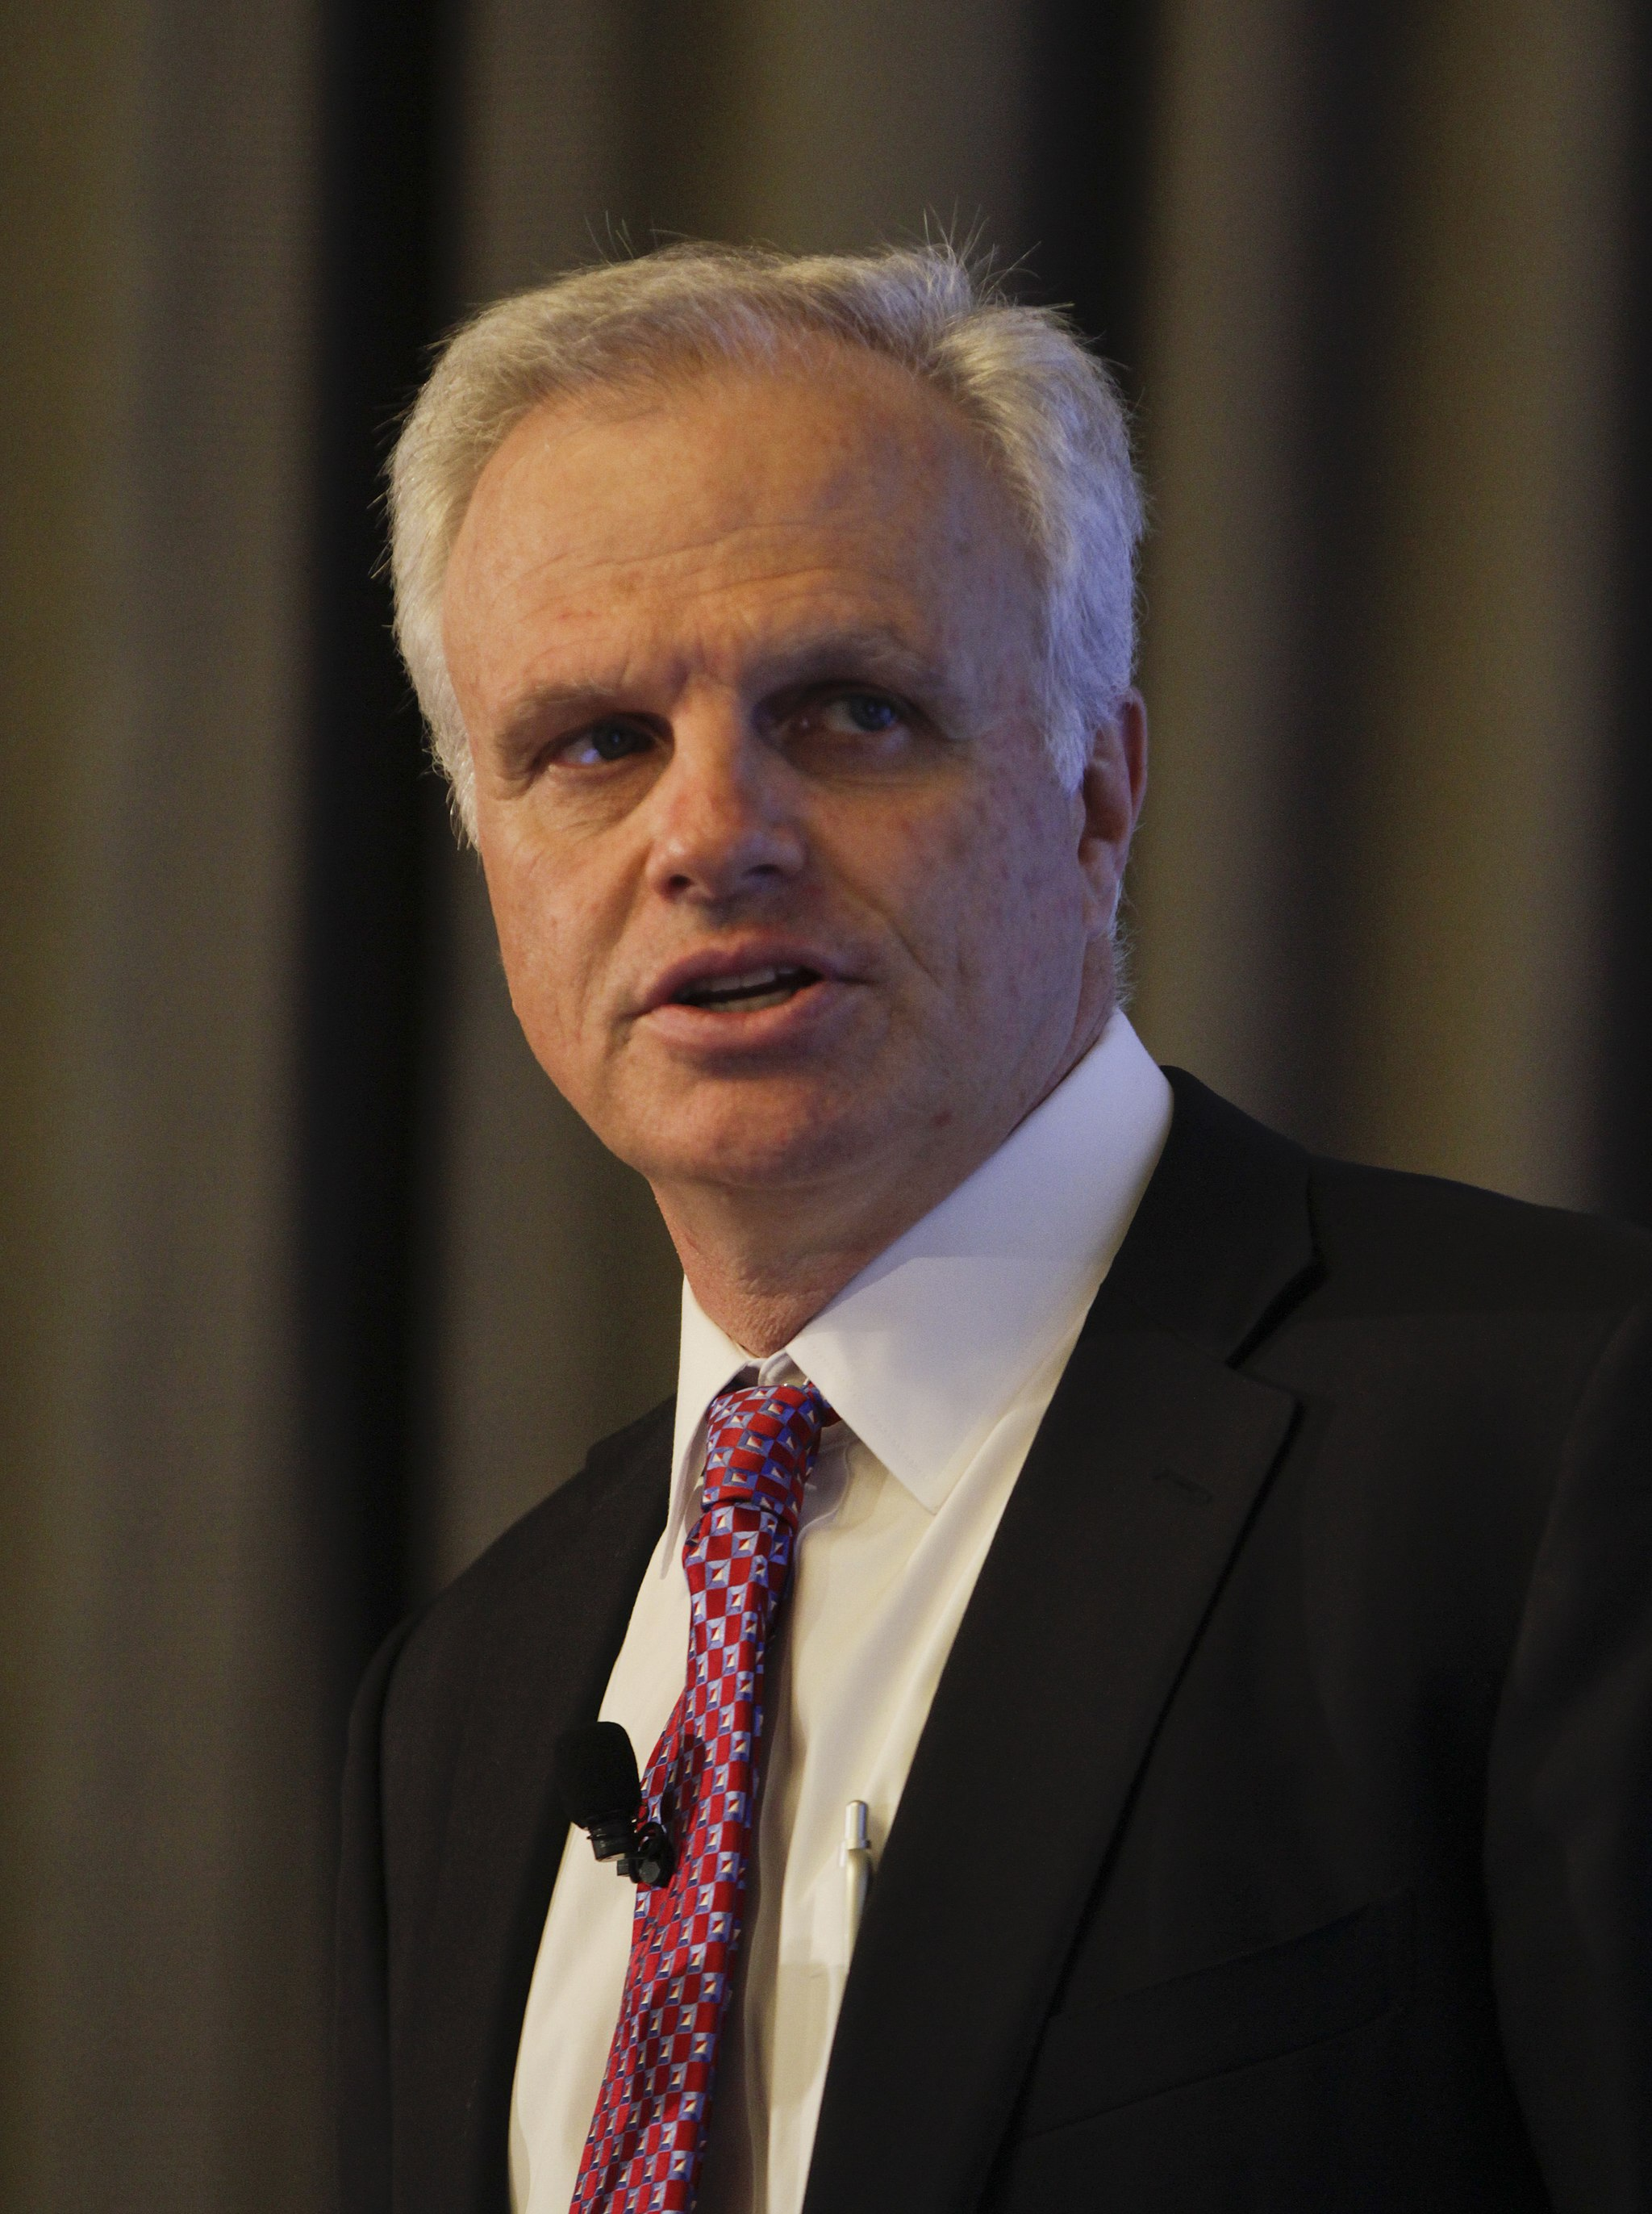 David Neeleman Photo: Tokota